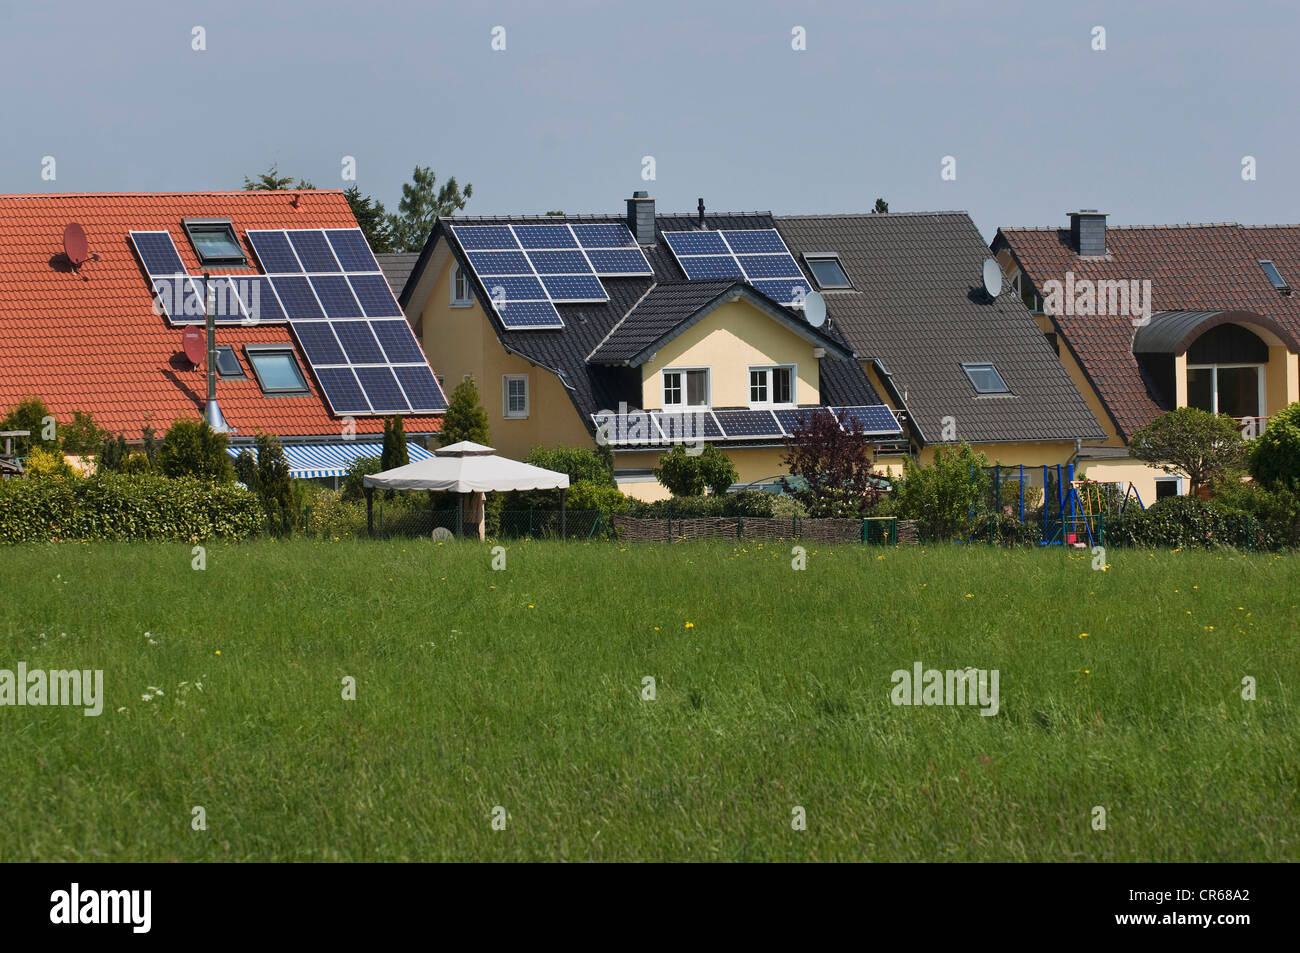 Modern housing estate, multi-family houses with solar panels on the roof, in the countryside - Stock Image